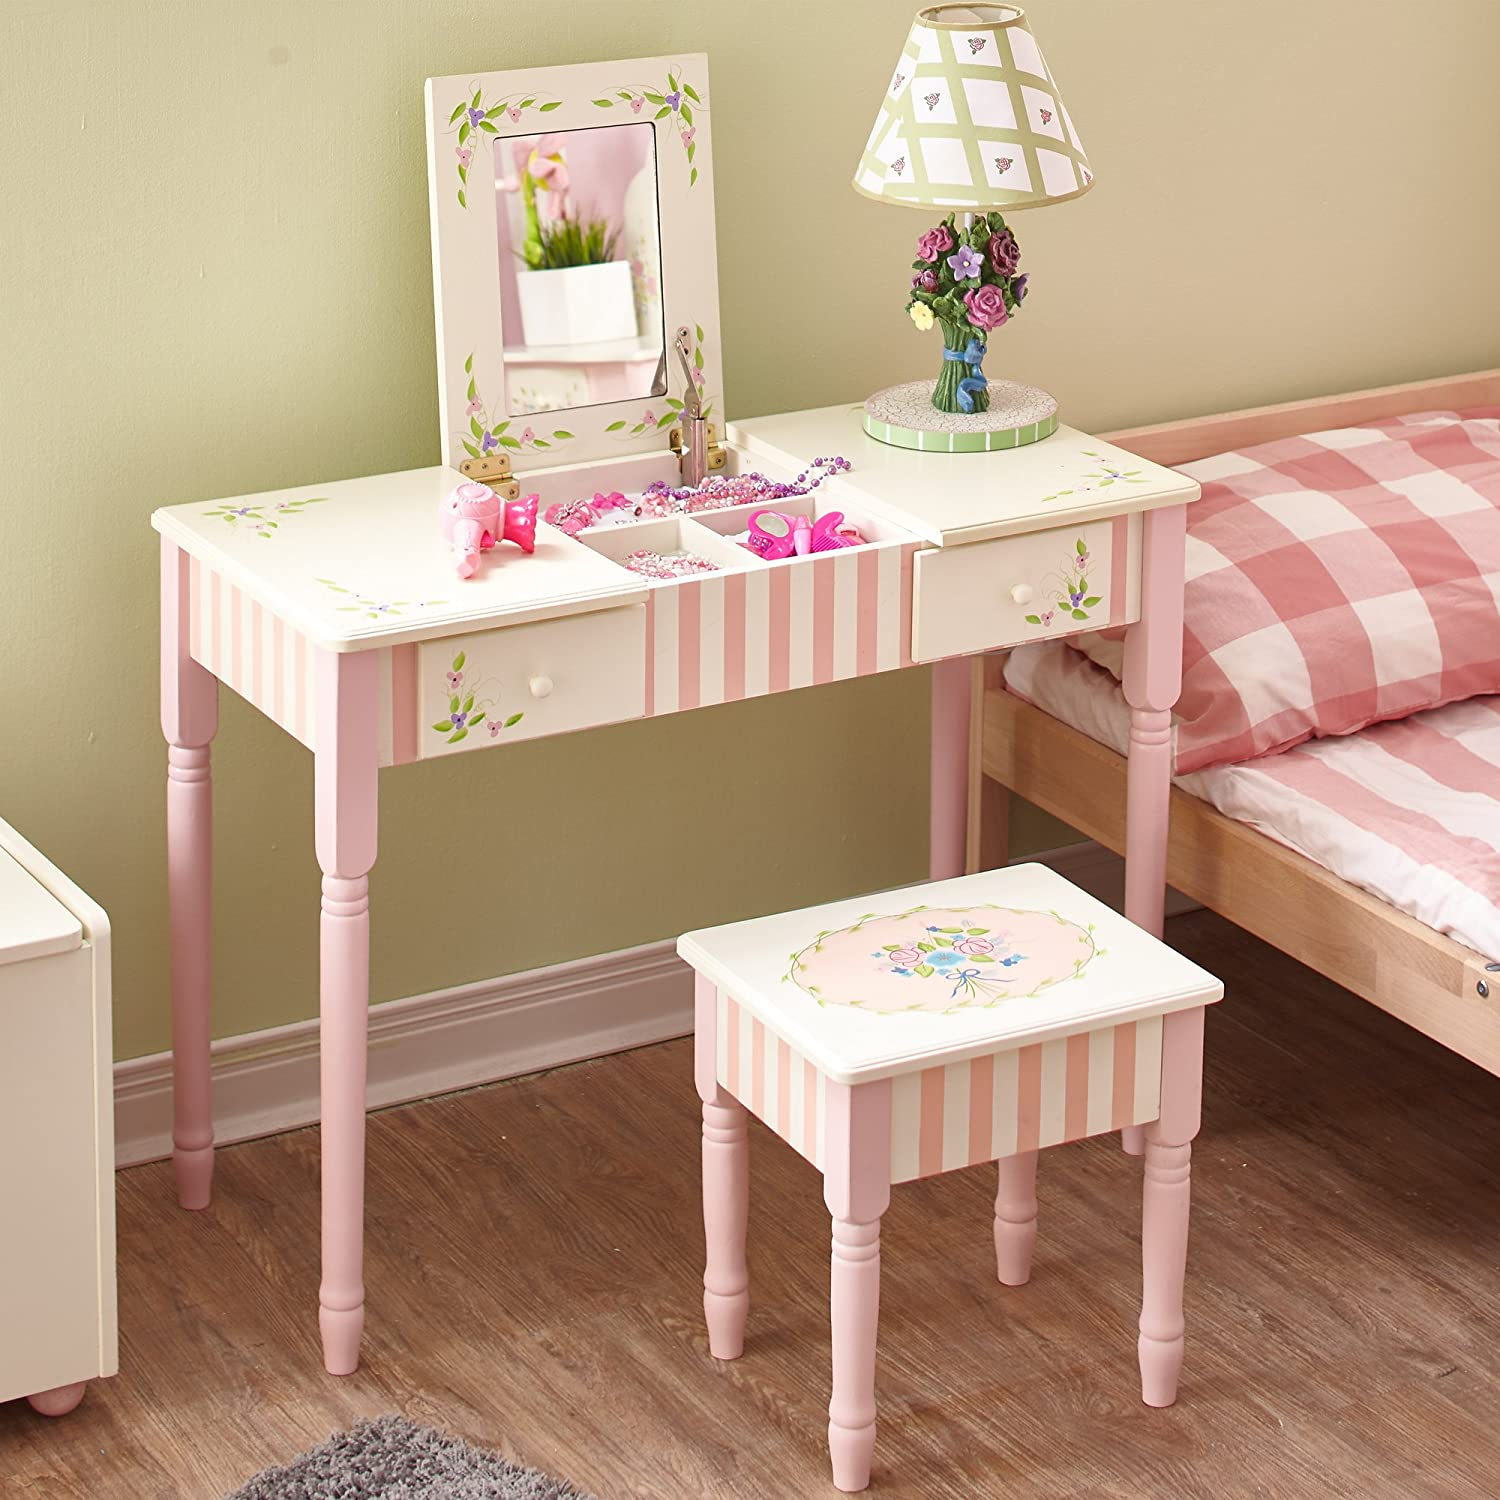 Amazon.com Fantasy Fields Bouquet Thematic Kids Flip Top Mirror Vanity Table and Stool Set | Imagination Inspiring Hand Crafted u0026 Hand Painted Details ... : child vanity table set - pezcame.com